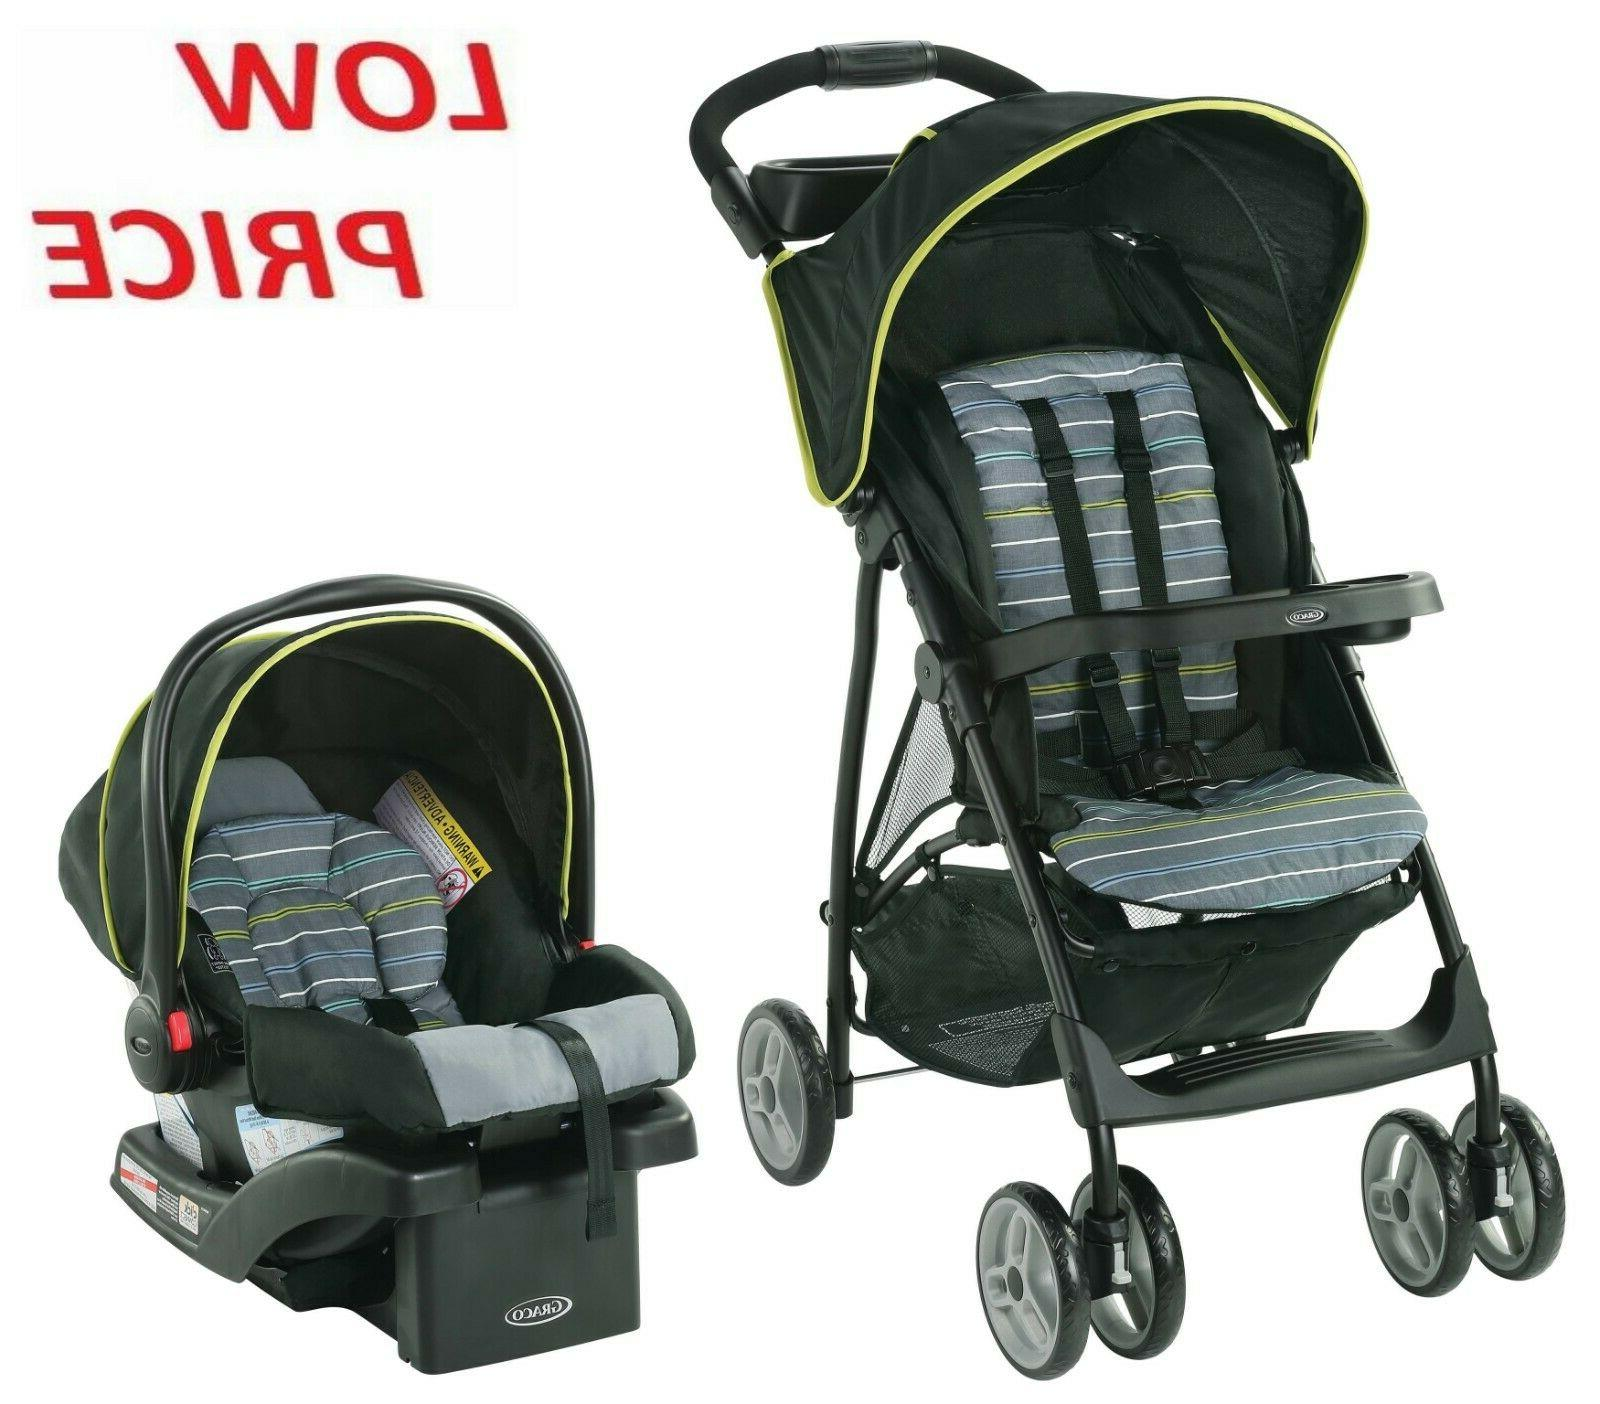 Stroller Baby Car Seat Combo In One Lightweight Sturdy Smoot